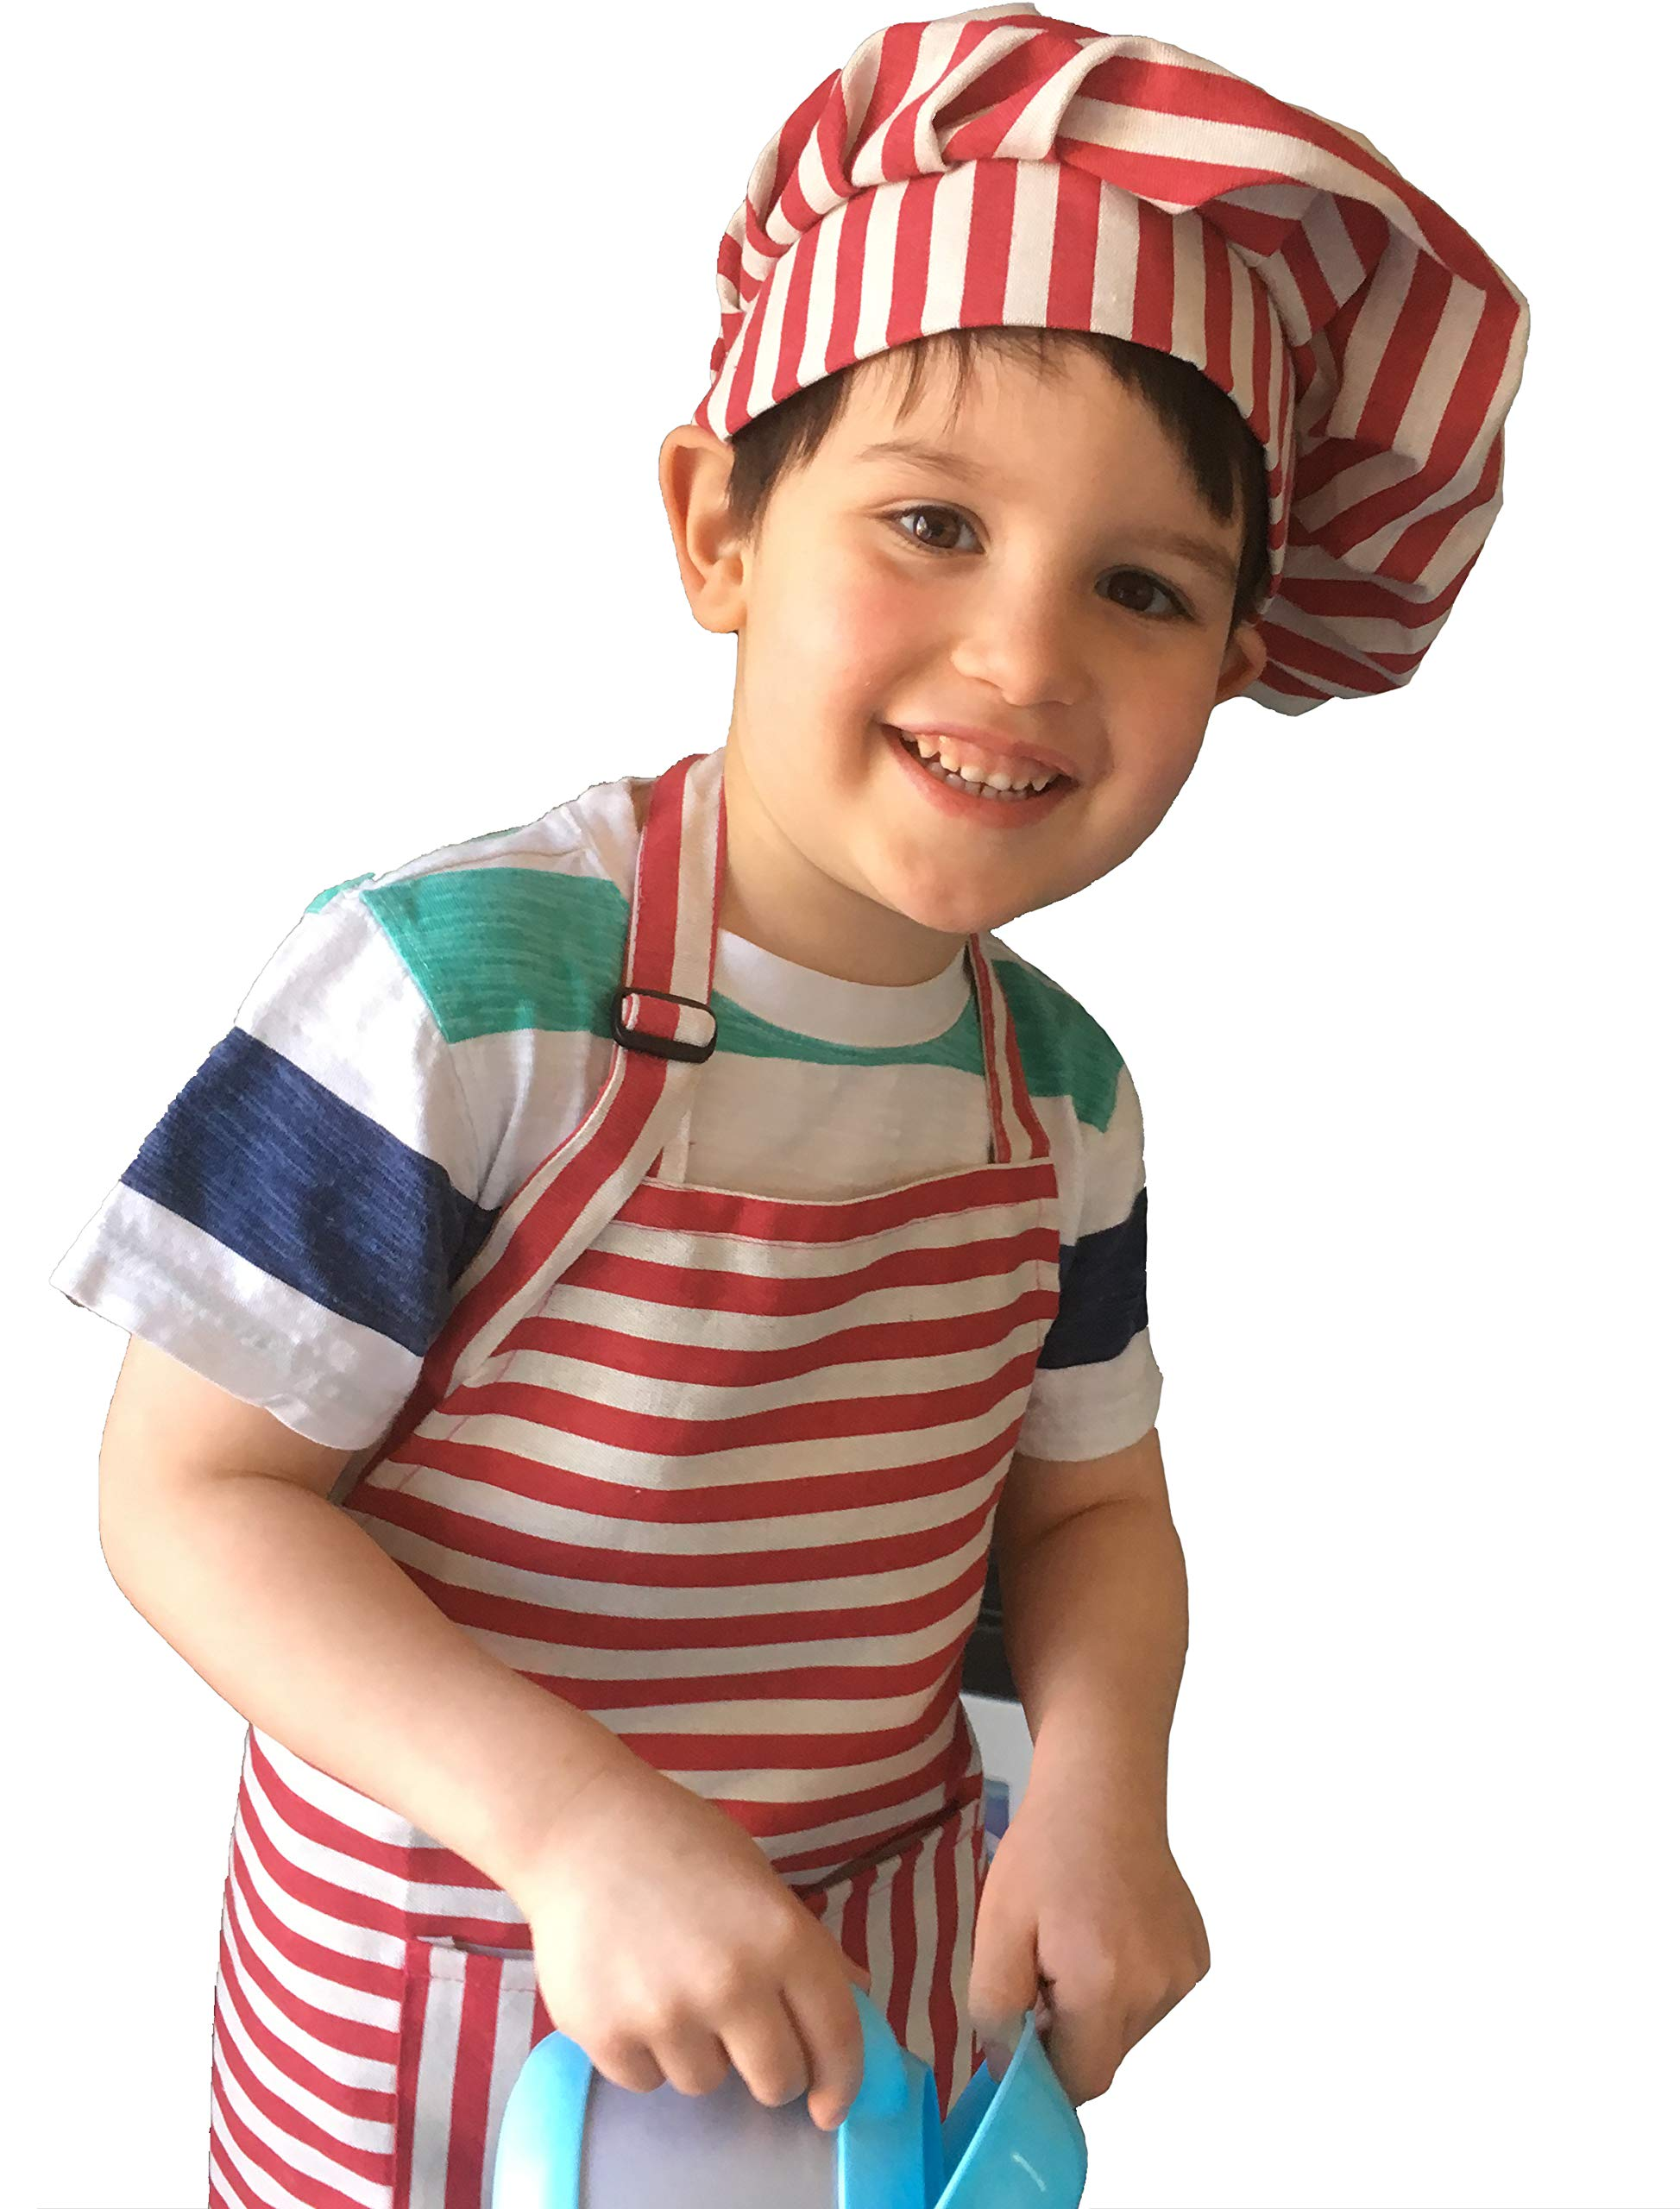 Dapper&Doll Red Stripe Kids Chef Hat and Apron for Boys Girls Ages 4-10 by Dapper&Doll